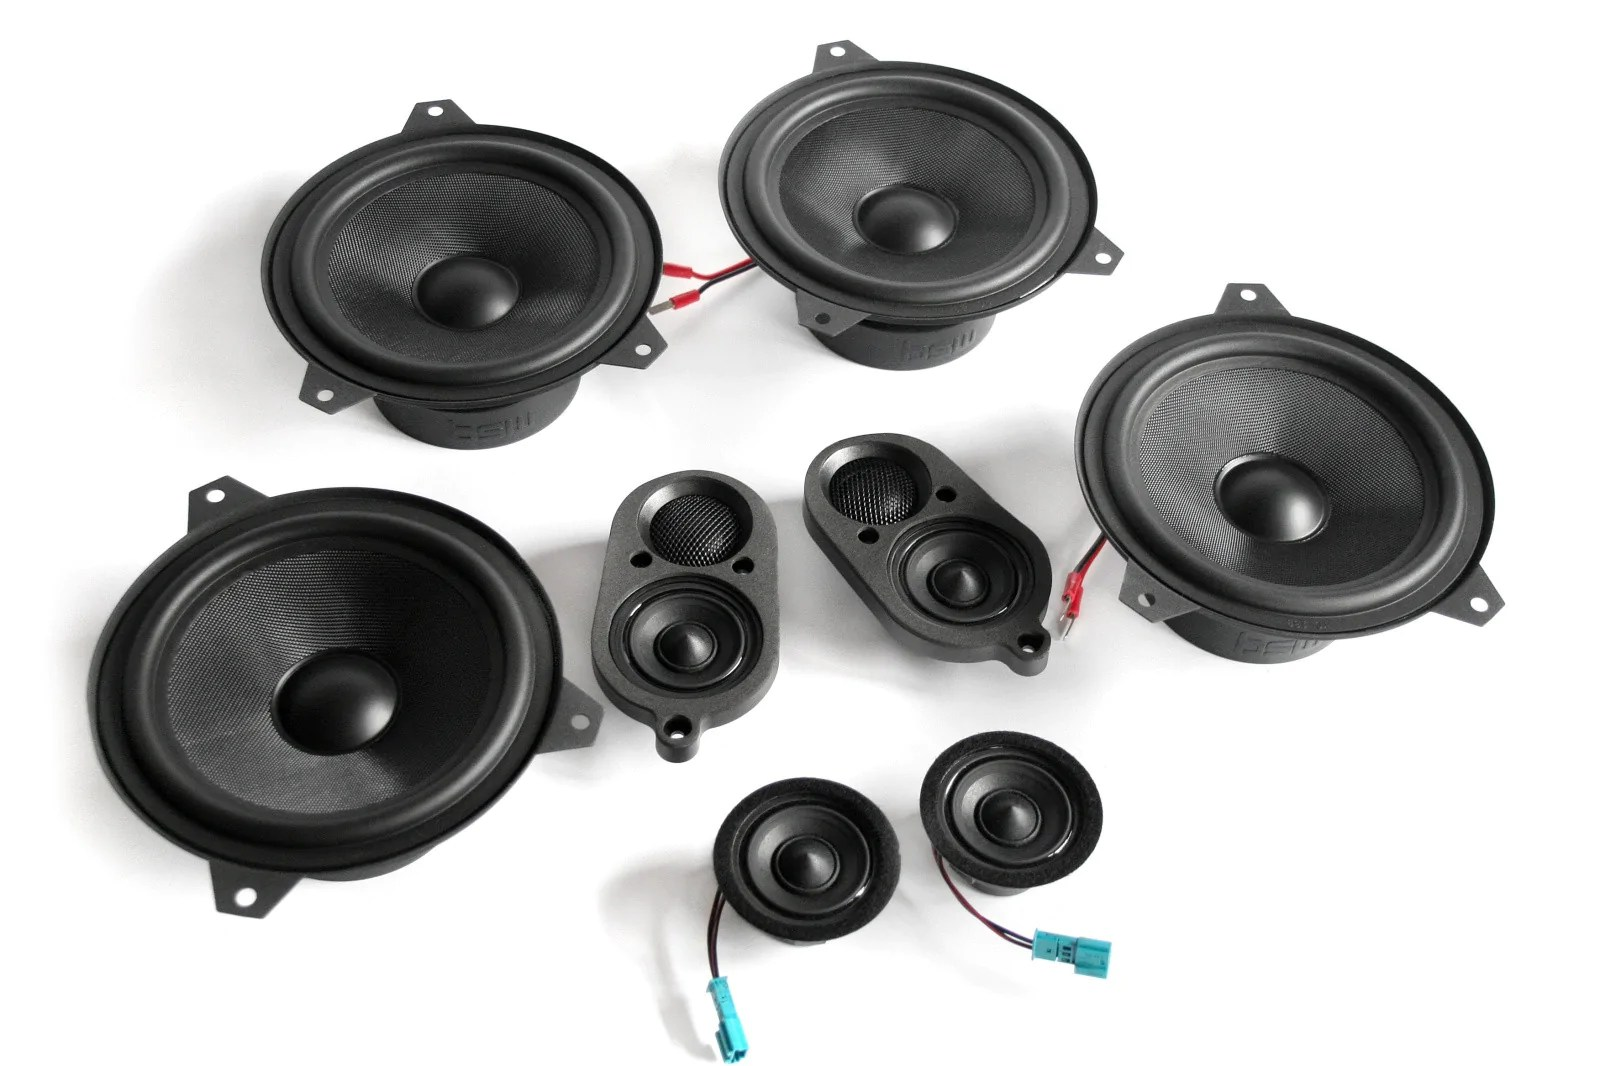 hight resolution of bmw speaker upgrade for e46 coupe with harman kardon